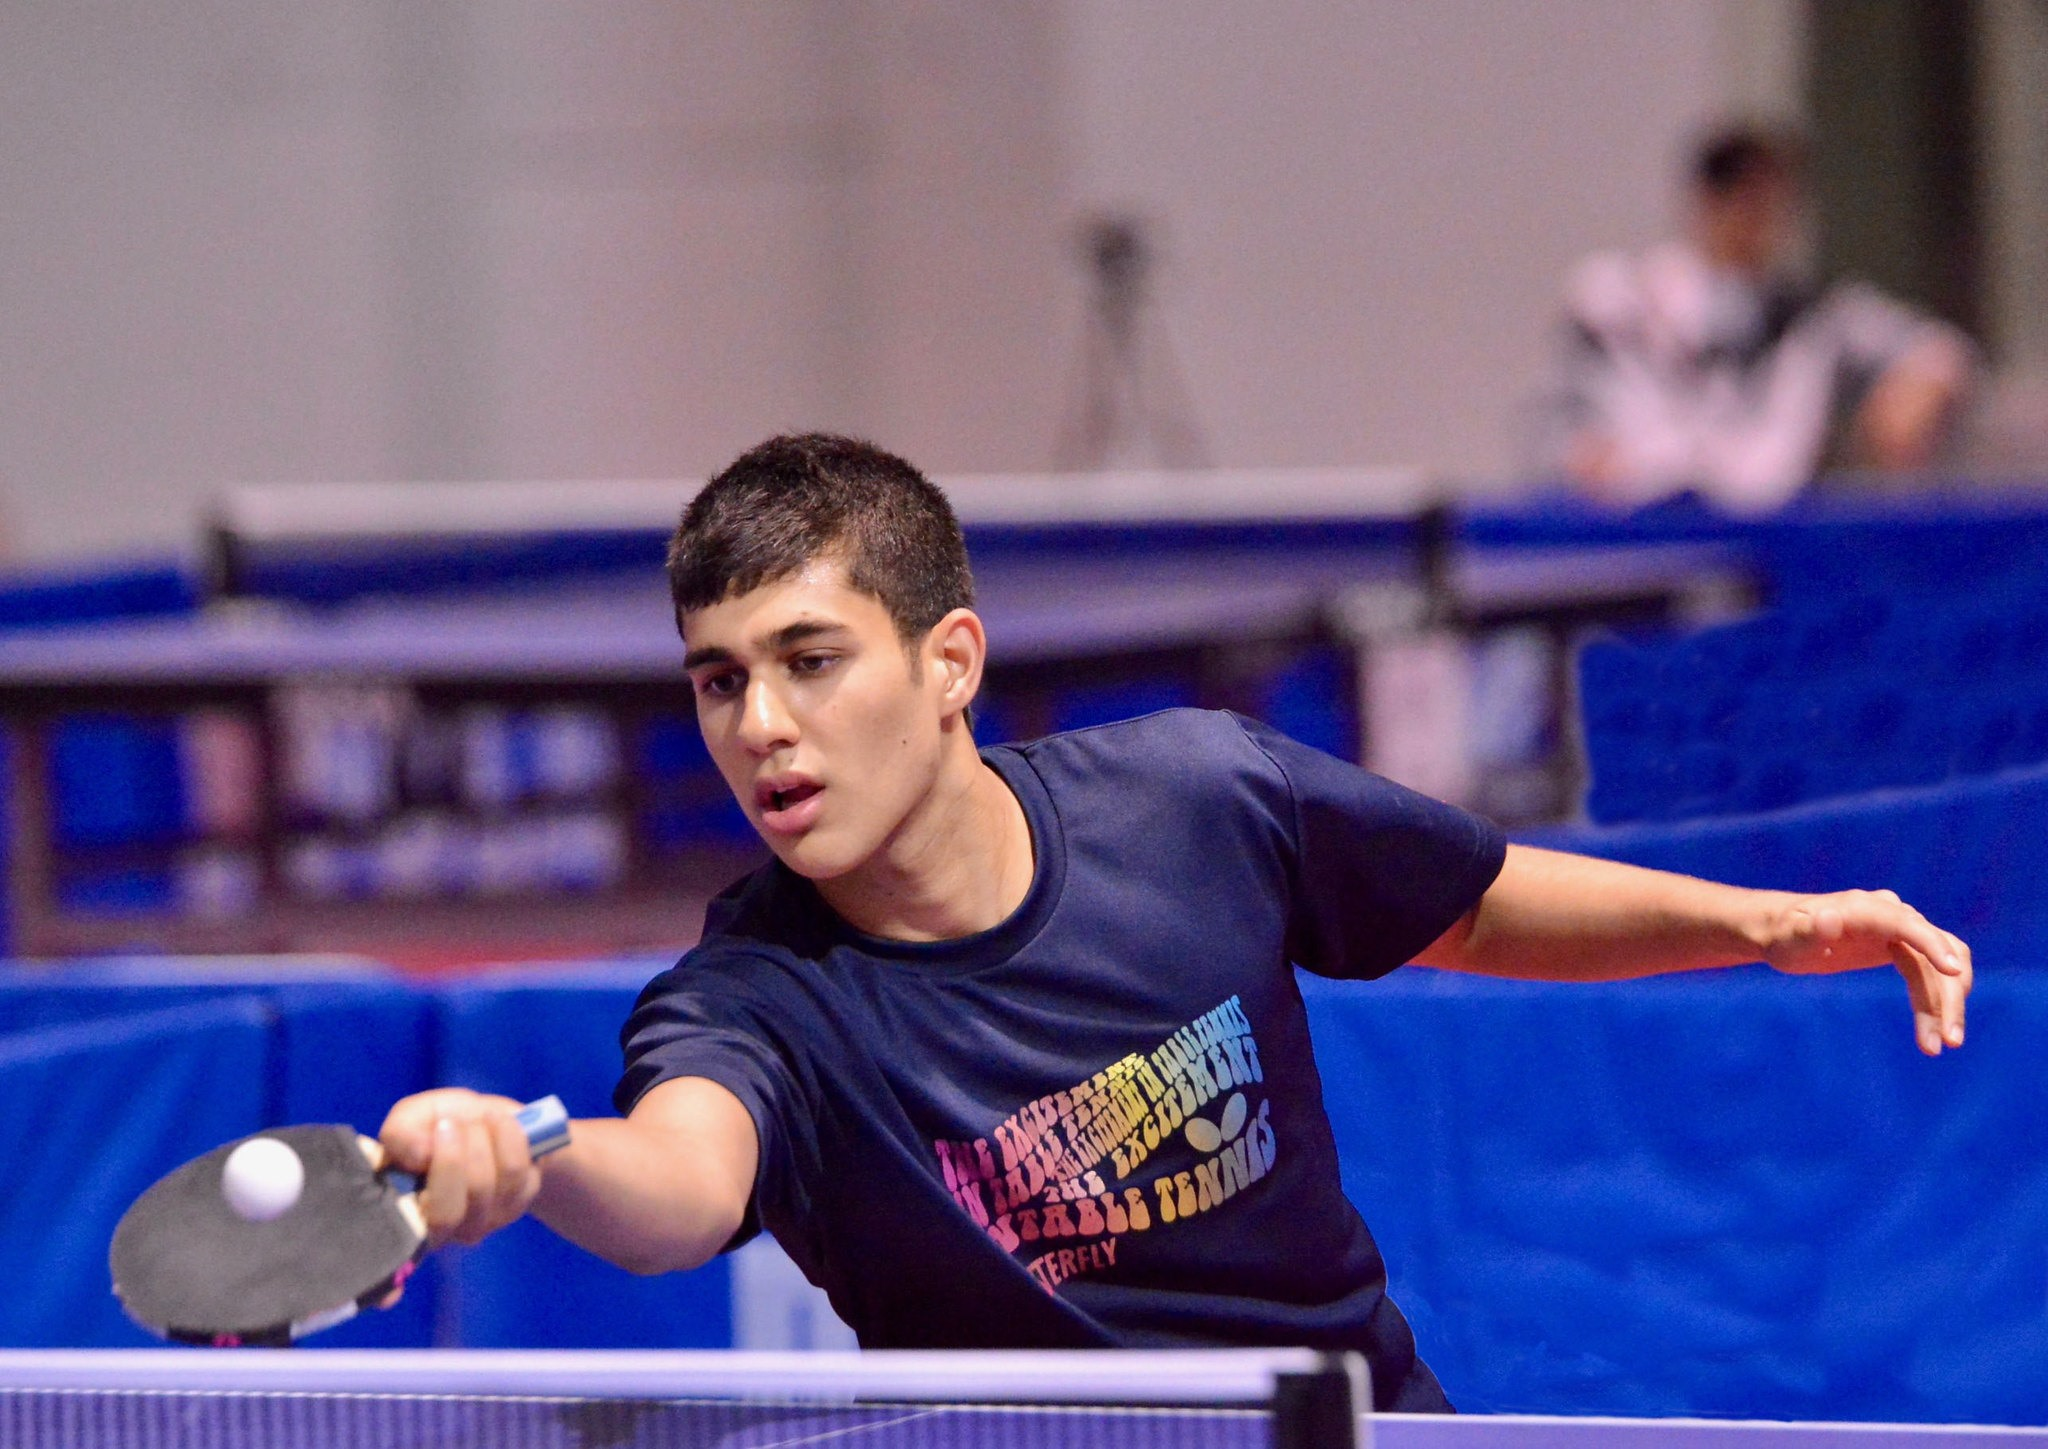 ITTF November Rankings: Fan is First of Four Chinese at Top